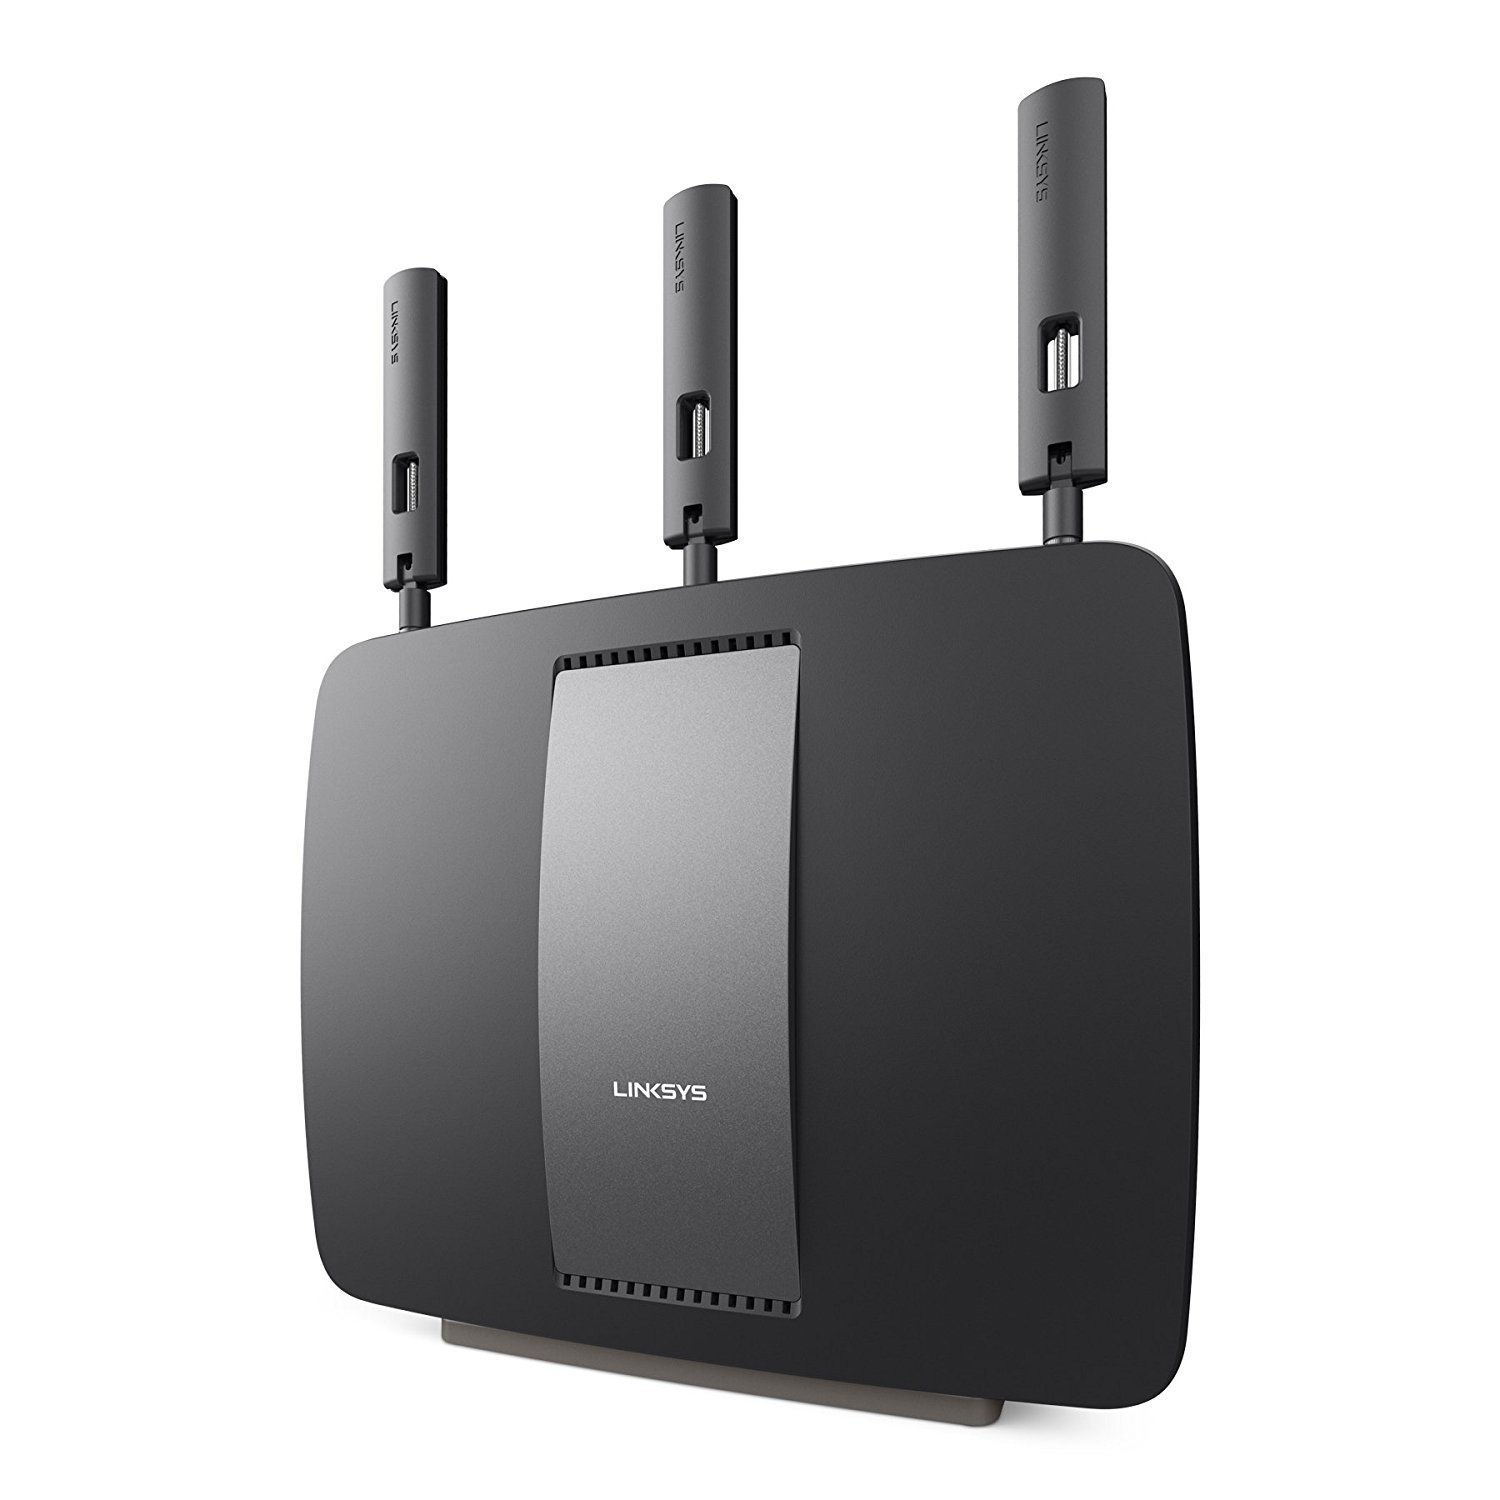 Linksys AC3200 Tri-Band Smart WiFi Router with Gigabit and USB, Designed for Device-Heavy Homes, Smart Wi-Fi App Enabled to Control Your Network from Anywhere (EA9200-RM2) (Renewed) by Linksys